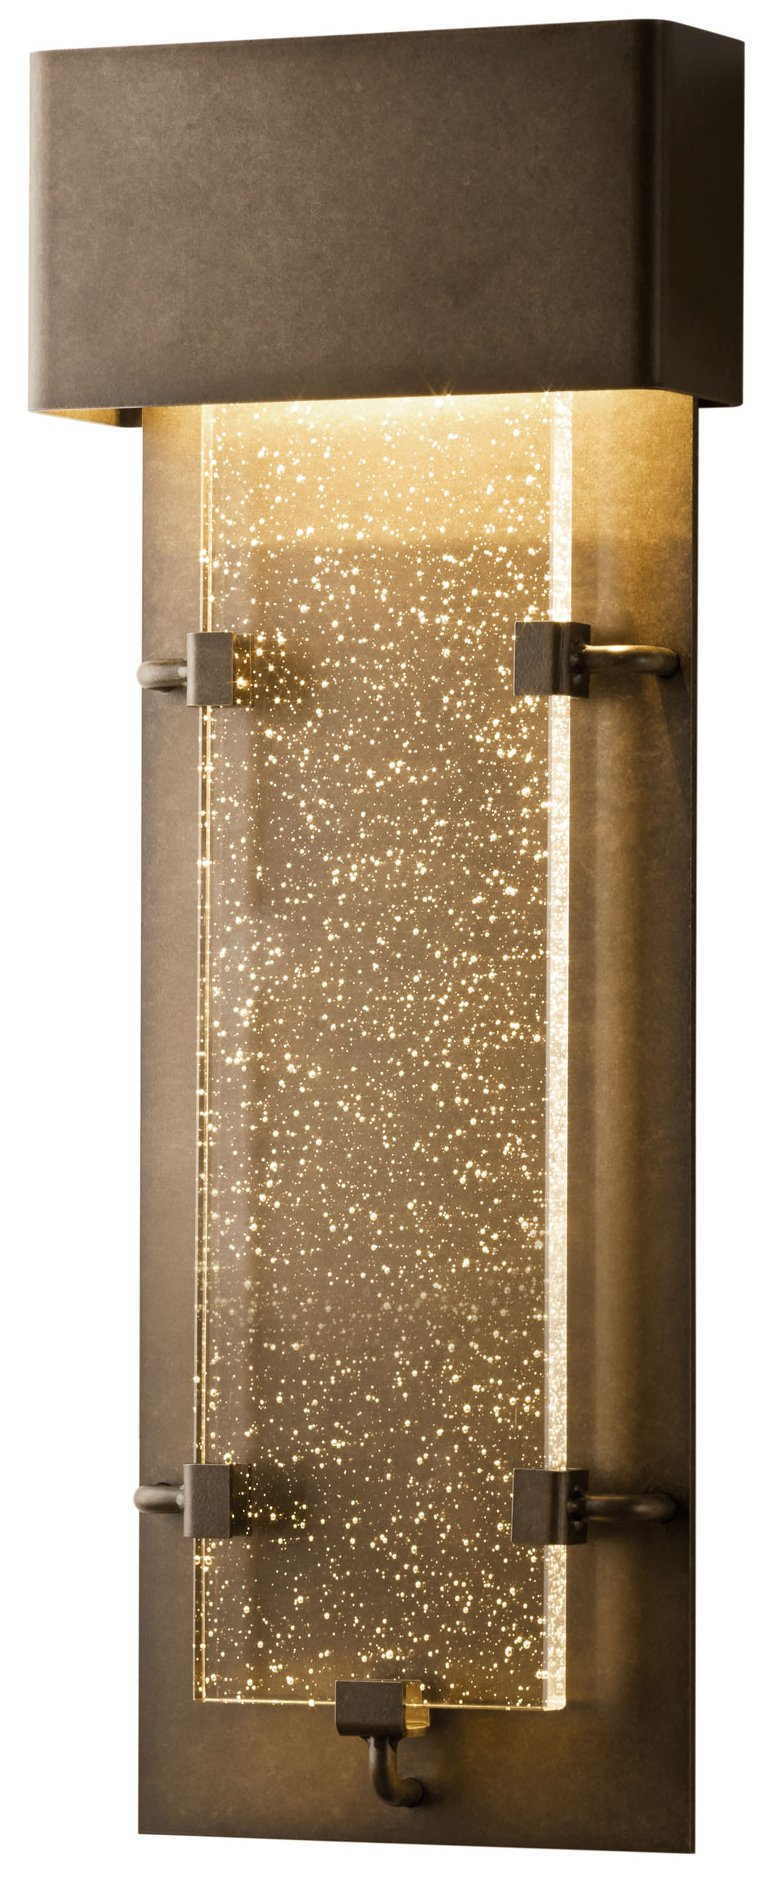 Hubbardton Forge 302501 Ursa LED Modern / Contemporary ... on Modern Outdoor Sconce Lights id=29159